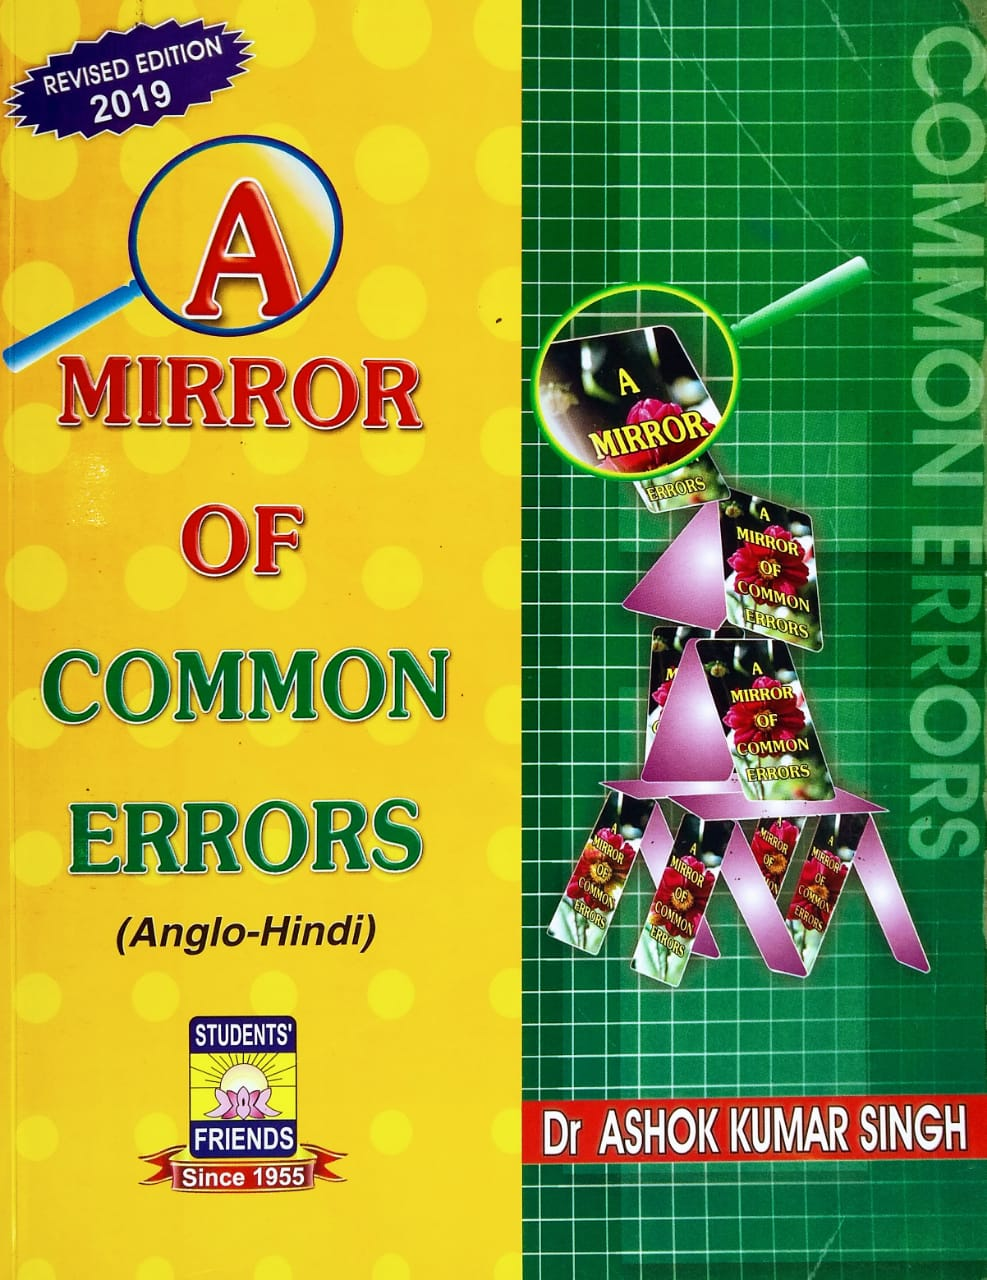 A MIRROR OF COMMON ERRORS (Anglo-Hindi)